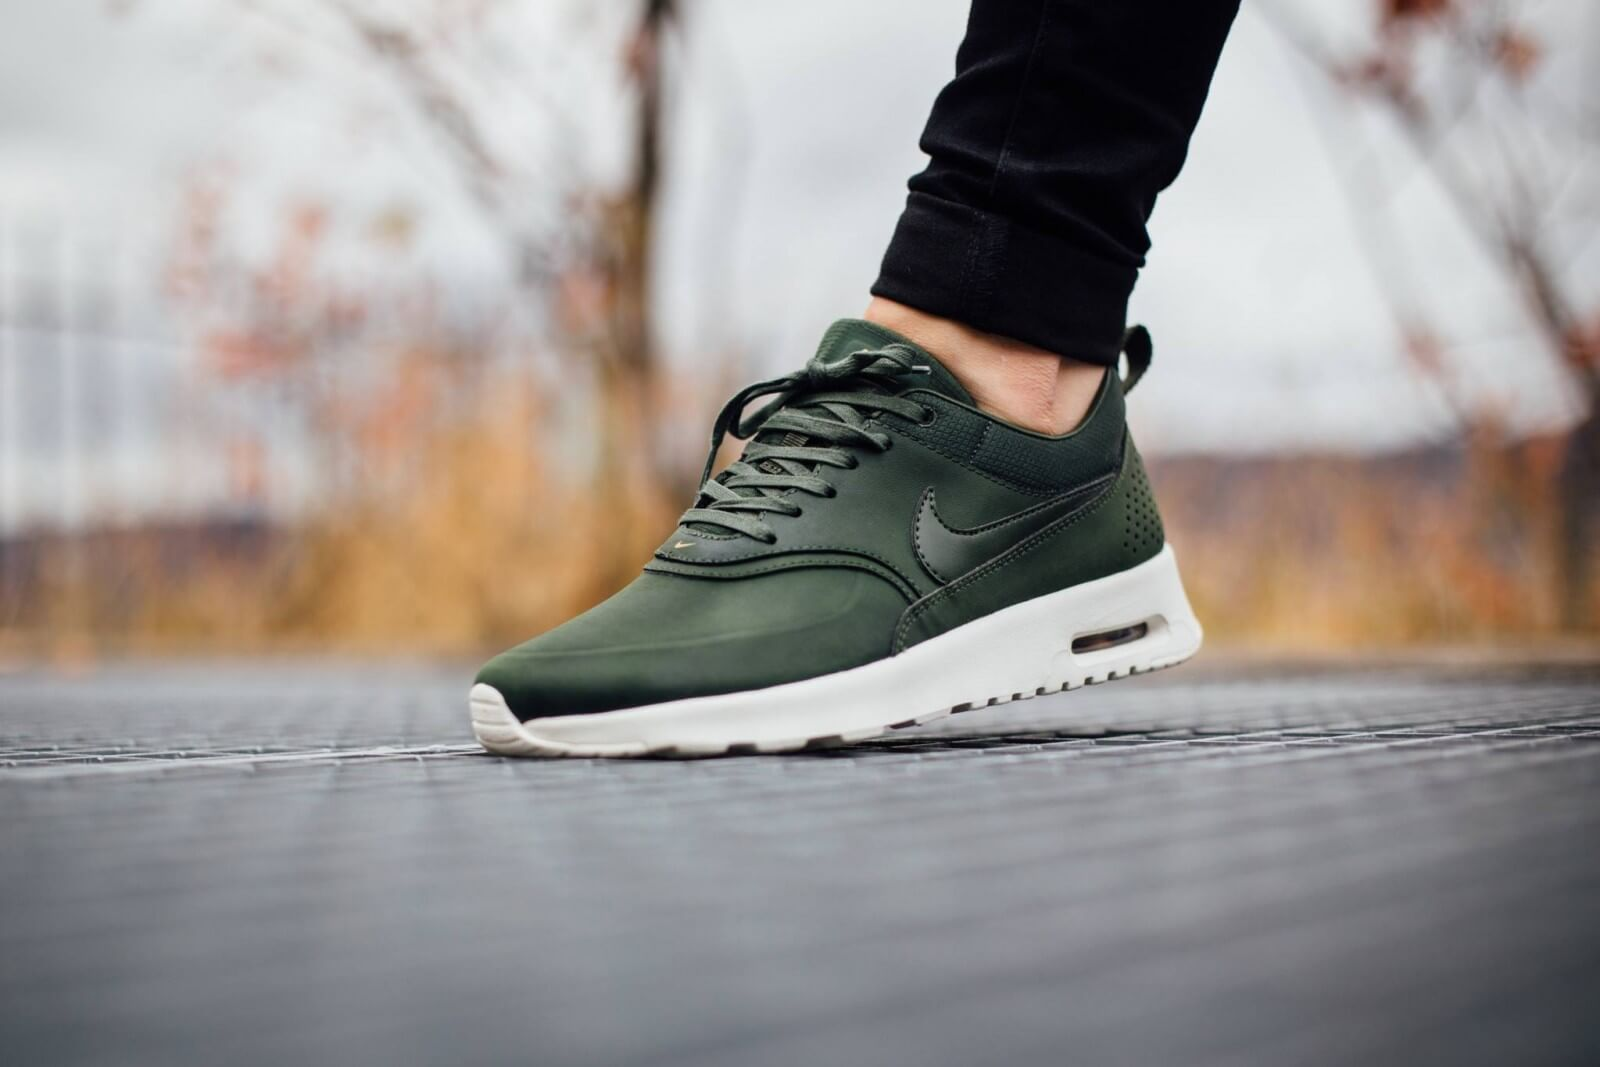 Nike Air Max Thea PRM Carbon Green - 616723-304